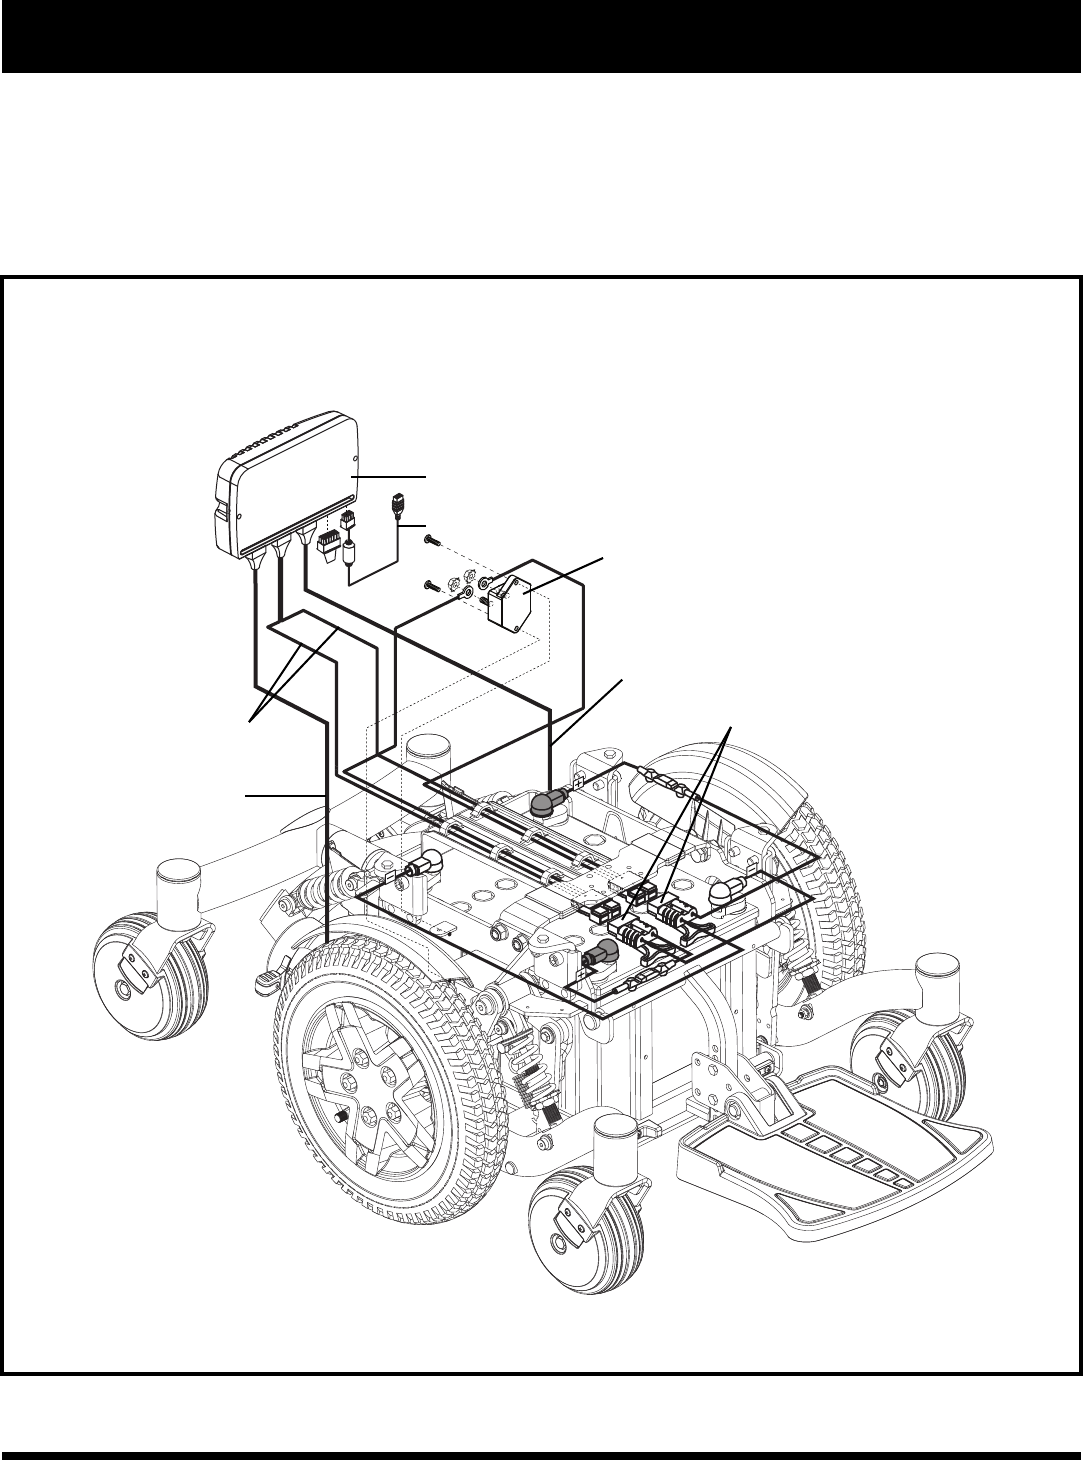 Bobcat 225g likewise Qfd further Dcs 9000 in addition  as well 5488830769831085. on laptop diagram